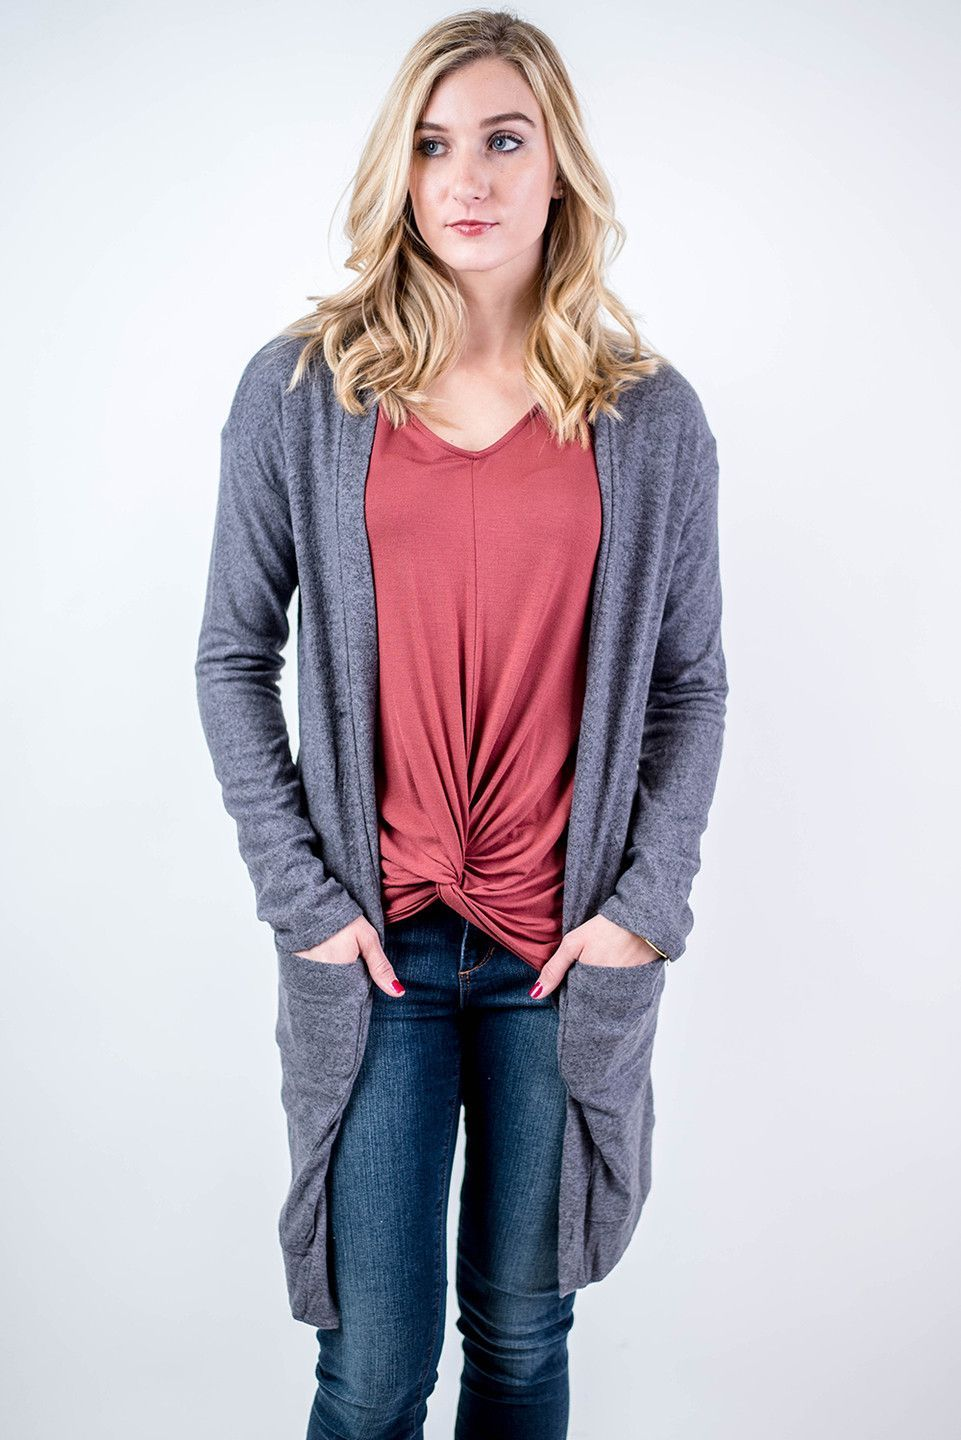 Believe me when I say our Grey Long Sleeve Pocket Cardigan is the softest piece around! Stay comfortable in class or at the pumpkin patch in this cardigan while paired with a scarf, skinny jeans, and booties!  Grey Long Sleeve Pocket Cardigan - Single Thread Boutique, $39.90 #grey #long #sleeve #pocket #cardigan #ultra #soft #comfort #knit #fabric #open #draped #style #side #pockets #womens #fashion #winter #fall #trendy #singlethreadbtq #shopstb #boutique